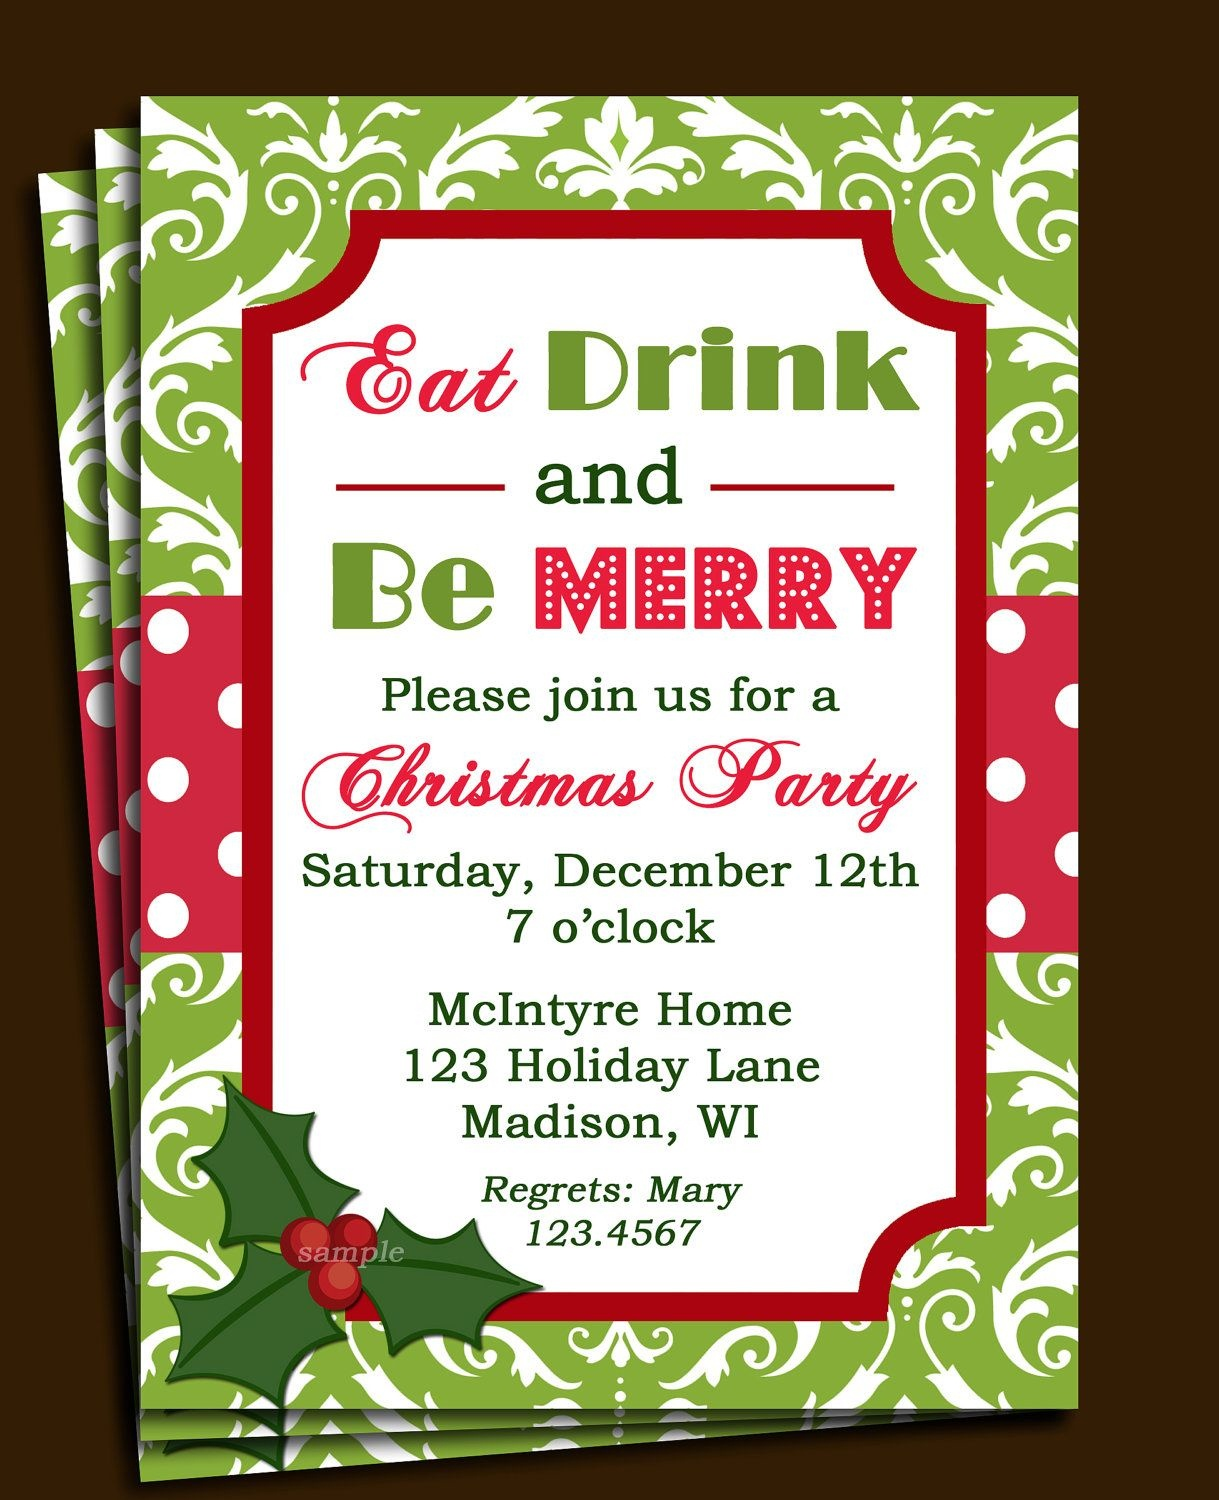 Free Printable Office Christmas Party Invitations | Party Stuff - Holiday Invitations Free Printable